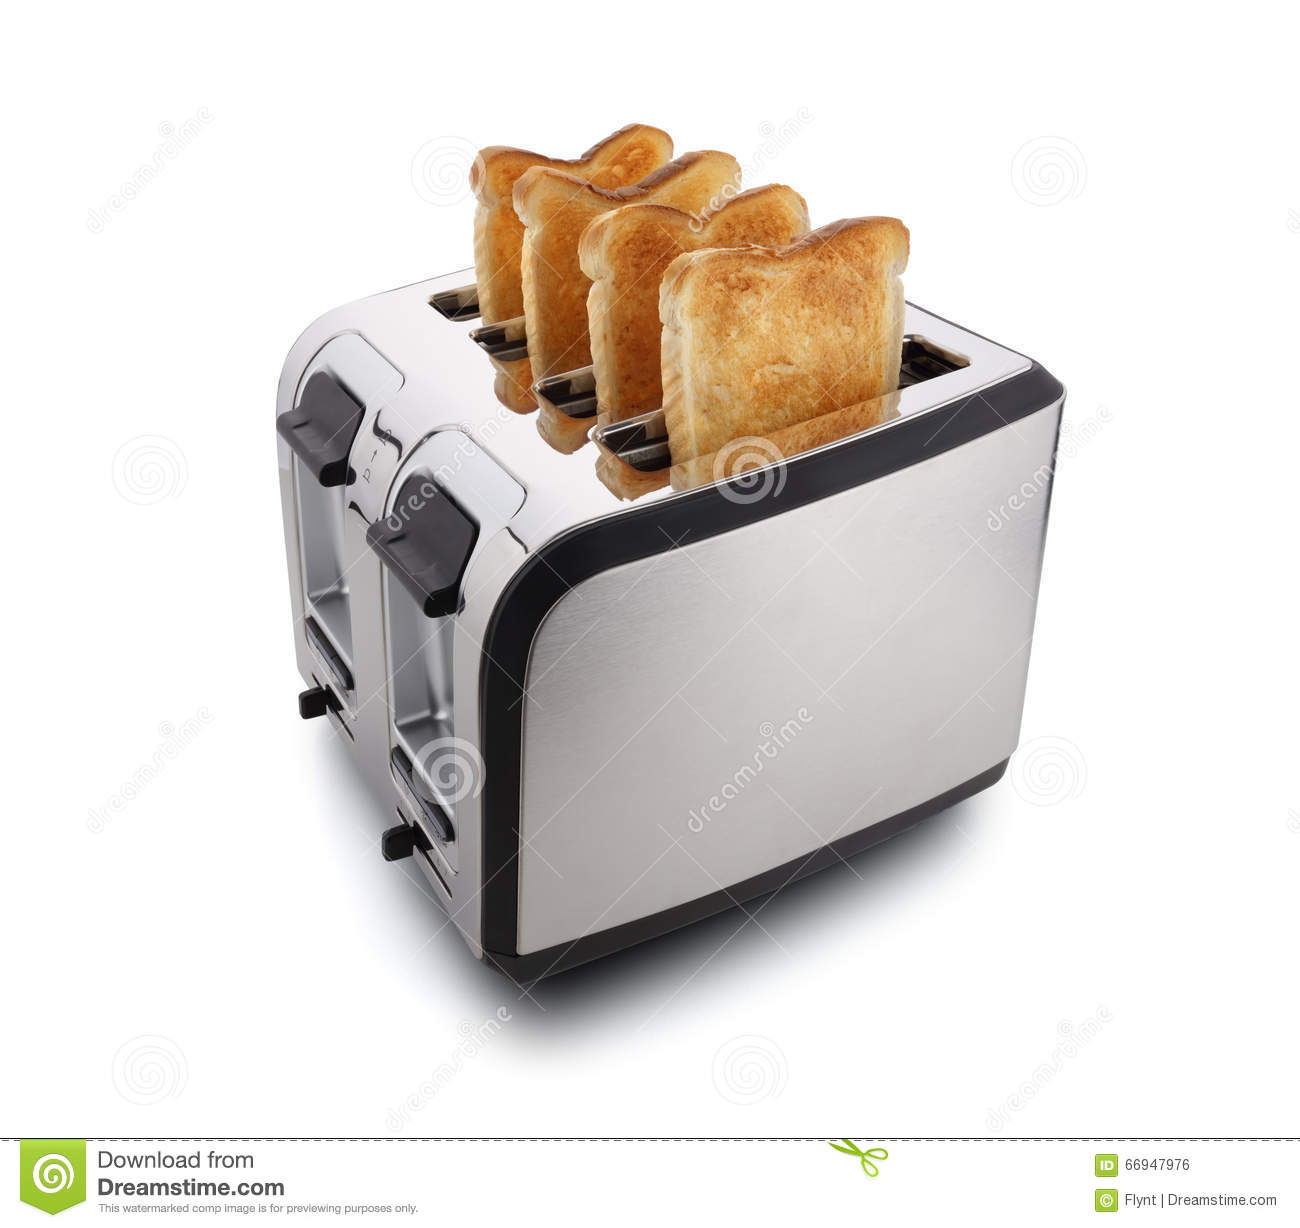 new modern toaster stock photo  image  - new modern toaster stock photo